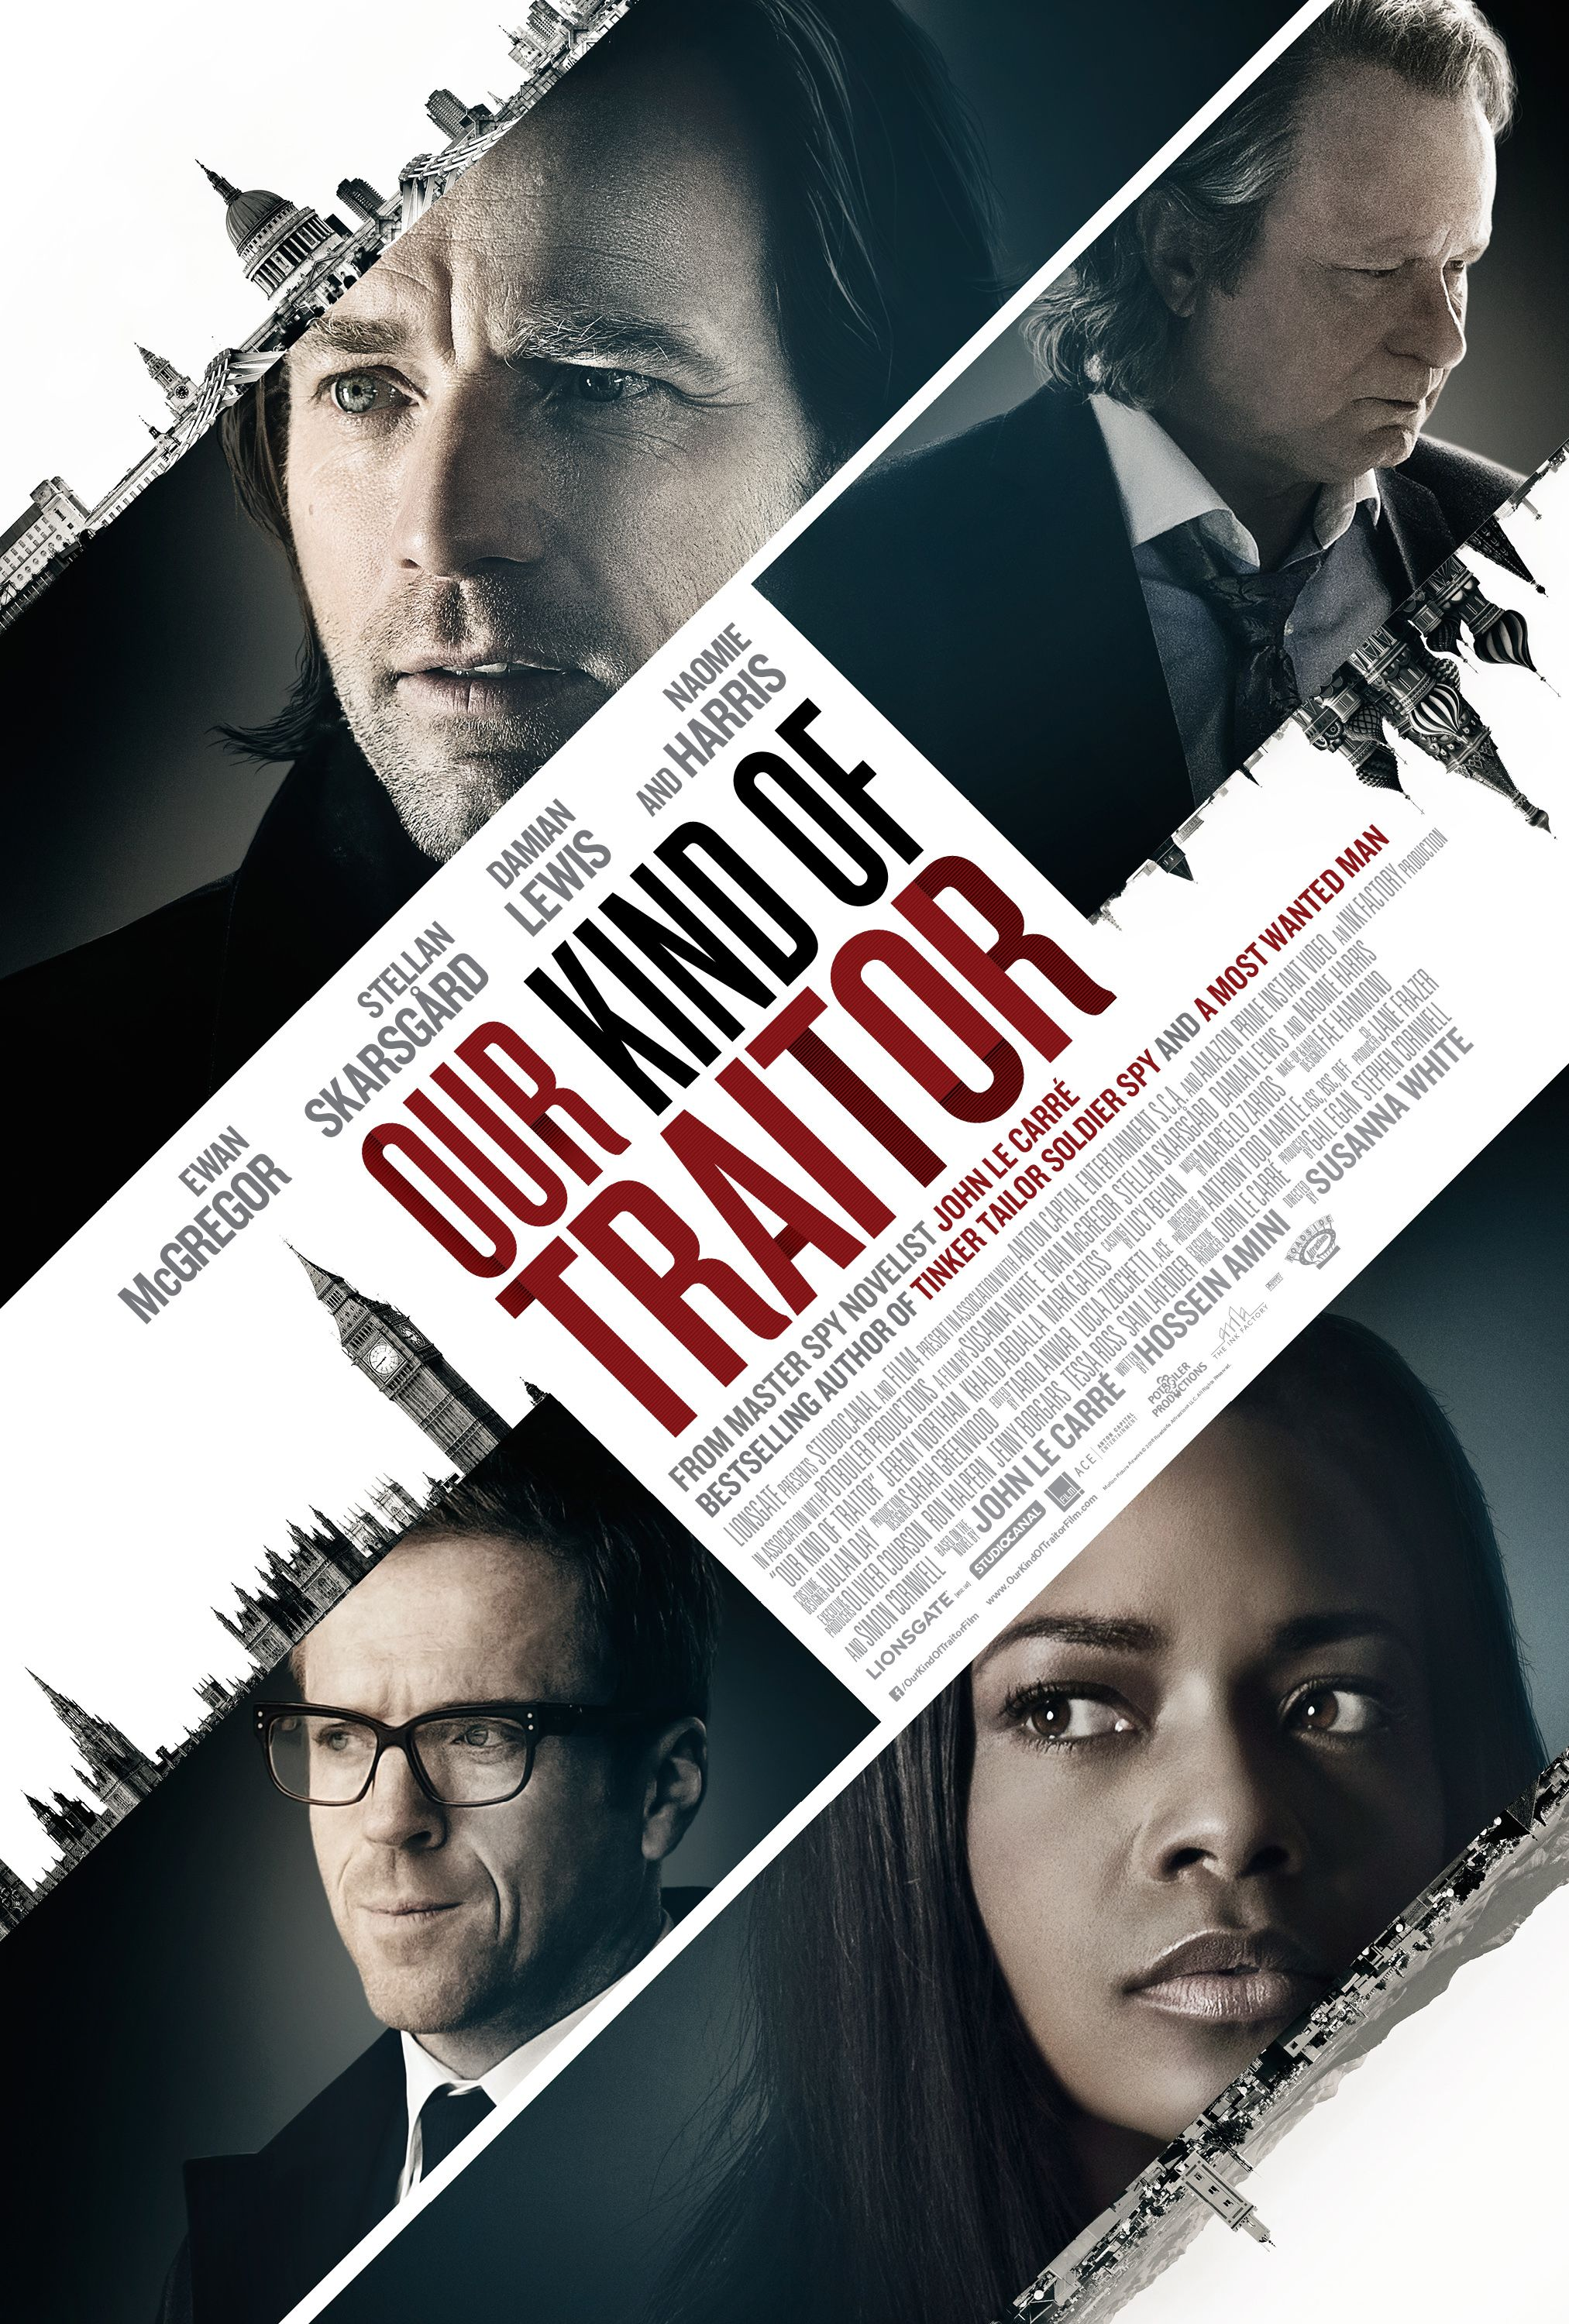 Our Kind of Traitor (15) - Village Cinema, Amy Robsart Hall, Syderstone, Norfolk, PE31 8SD | A thriller adapted from the 2010 novel by John Le Carre, moving from the era of Cold War spying to the equally dark world of money laundering.  | film